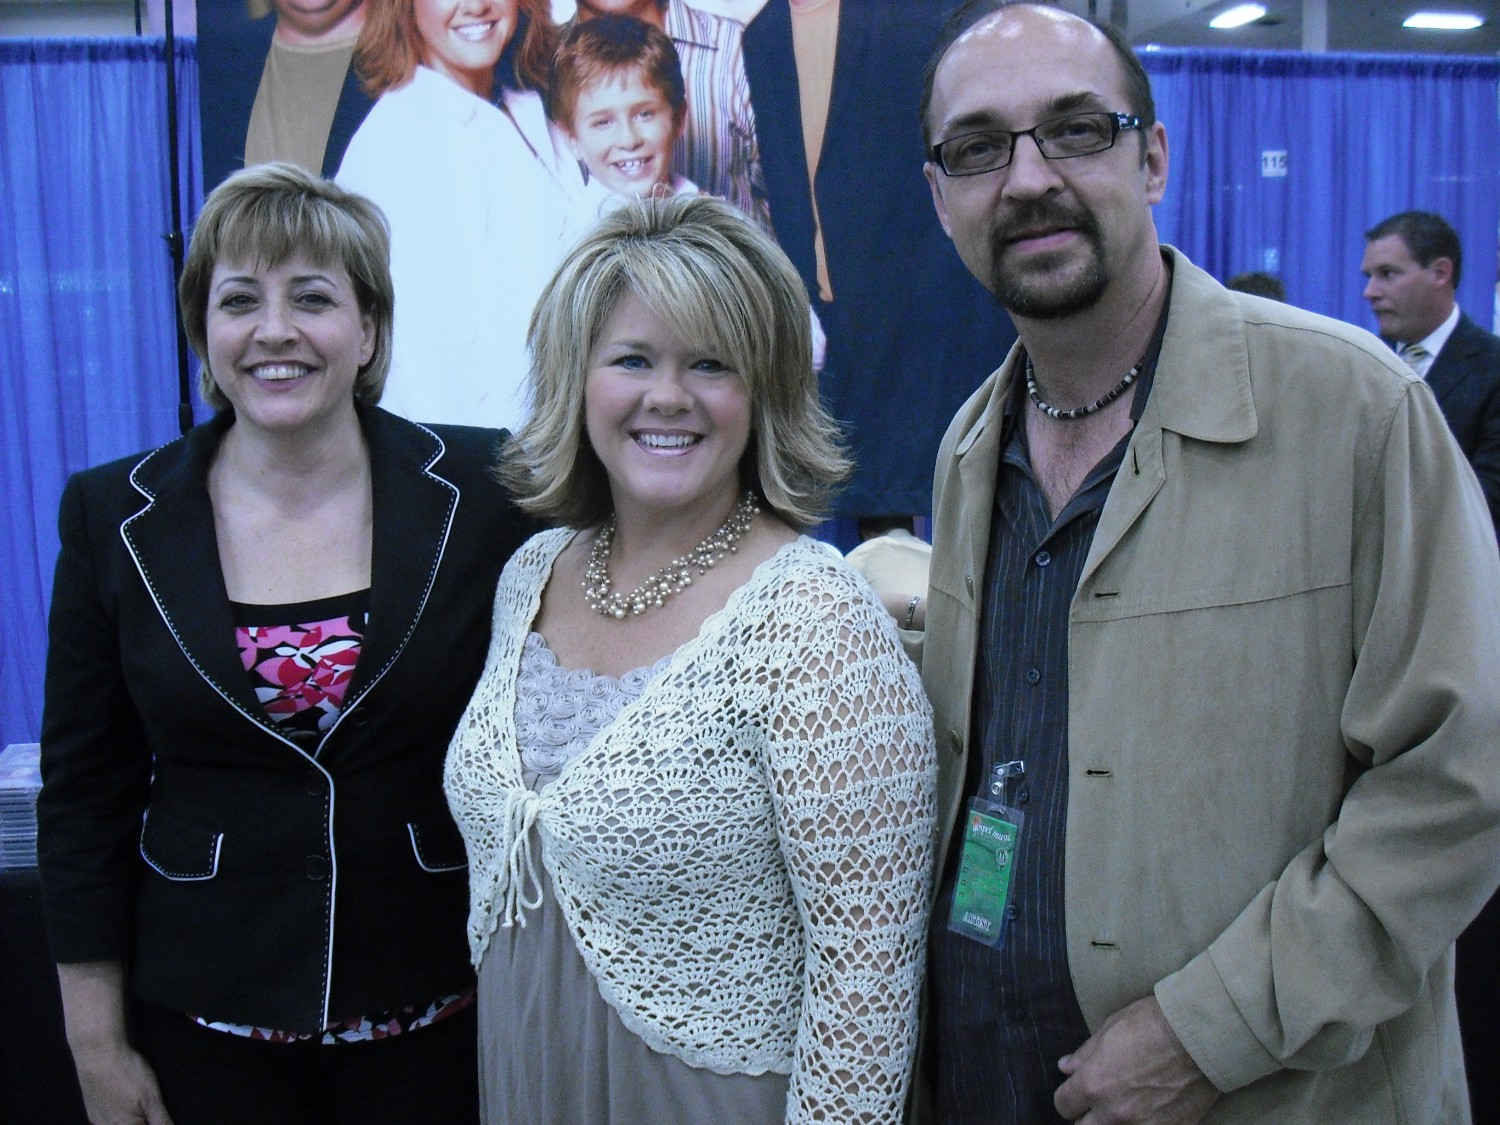 Susan Whisnant with Dianne and Dale